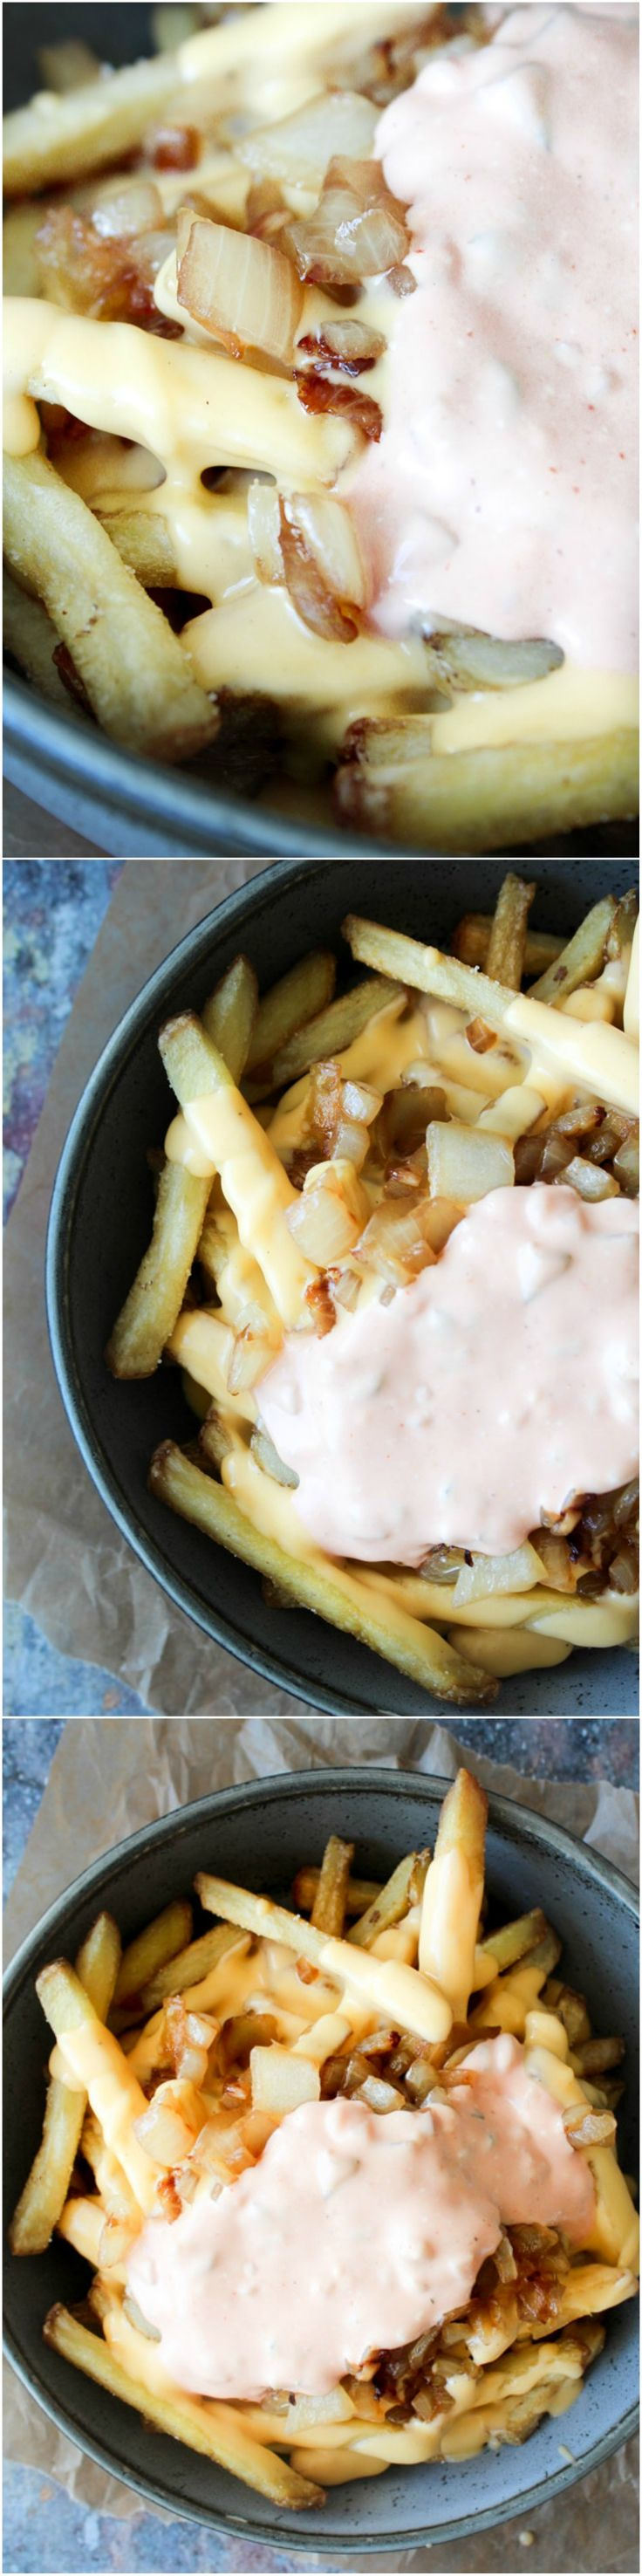 Homemade Animal Style Fries - Cheddar Cheese Sauce - Fries - Fry Sauce - Dip - Side Dish